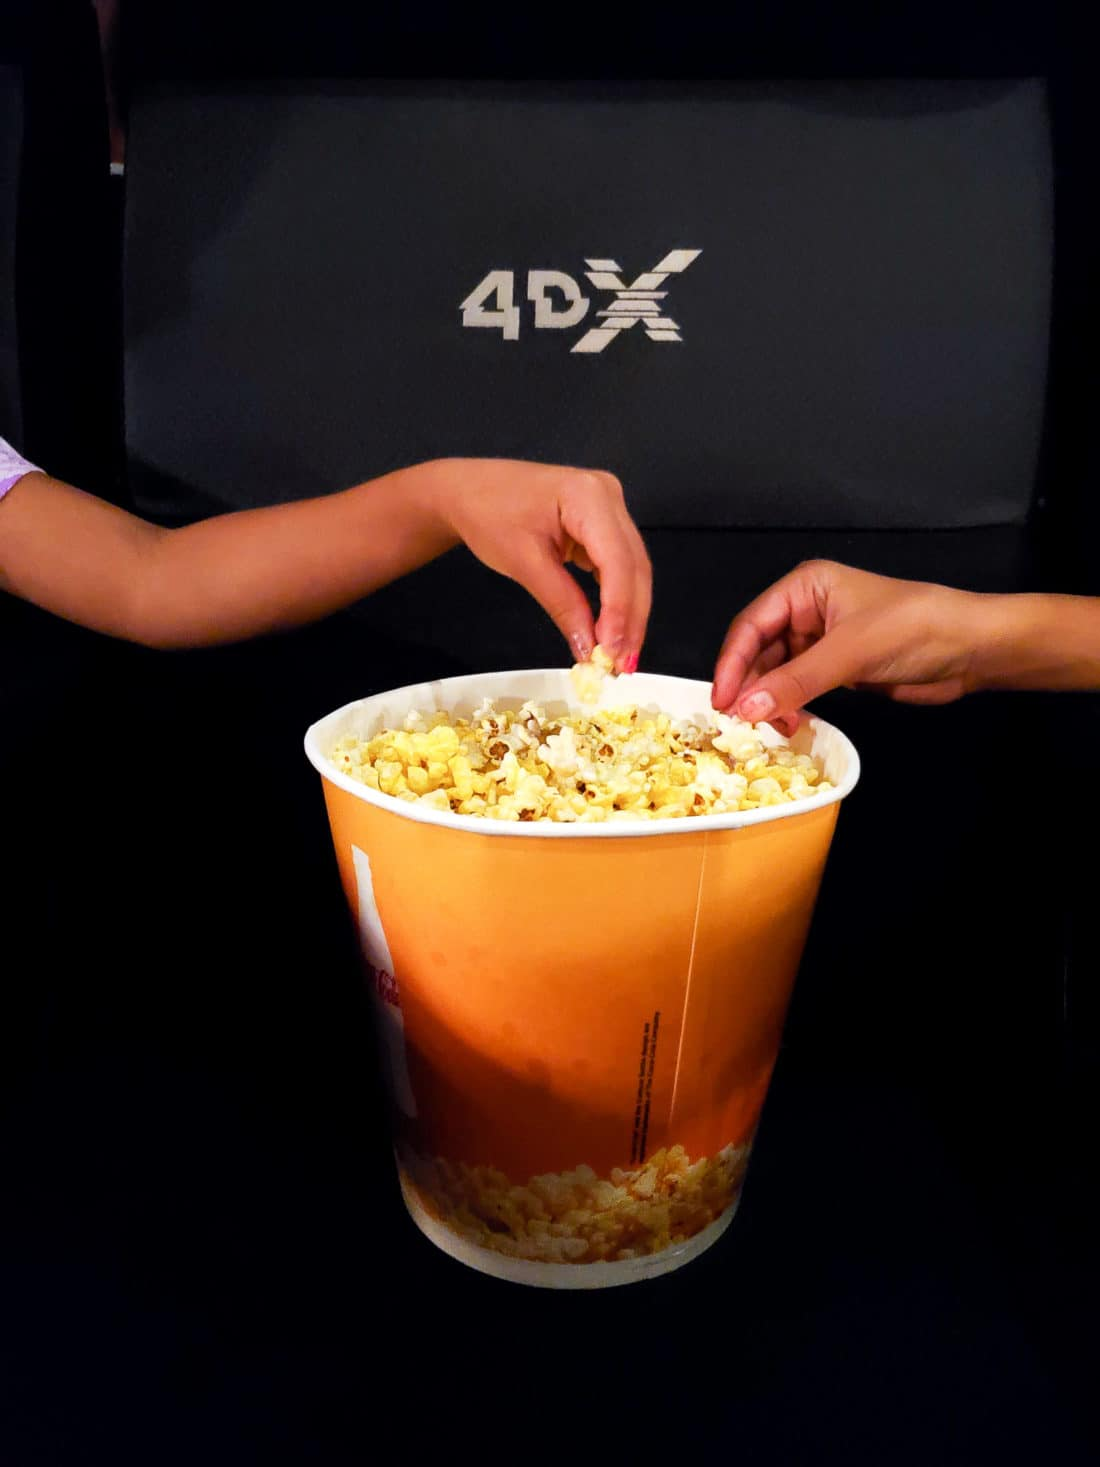 4DX Seat Popcorn. The flightless angry birds and the scheming green piggies take their beef to the next level in The Angry Birds Movie 2!